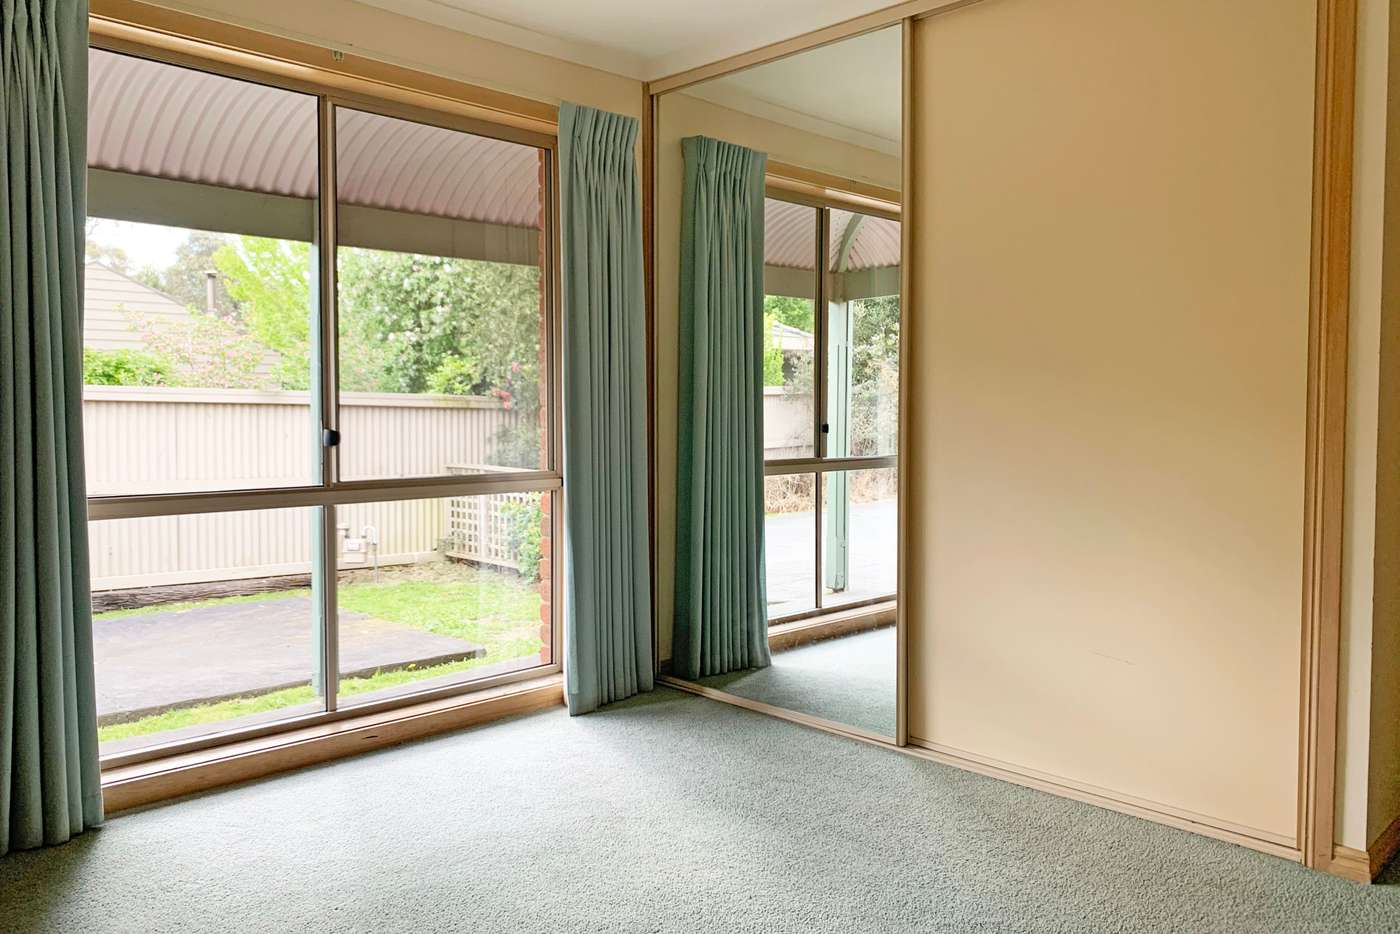 Seventh view of Homely house listing, 33 Recreation Road, Mount Clear VIC 3350